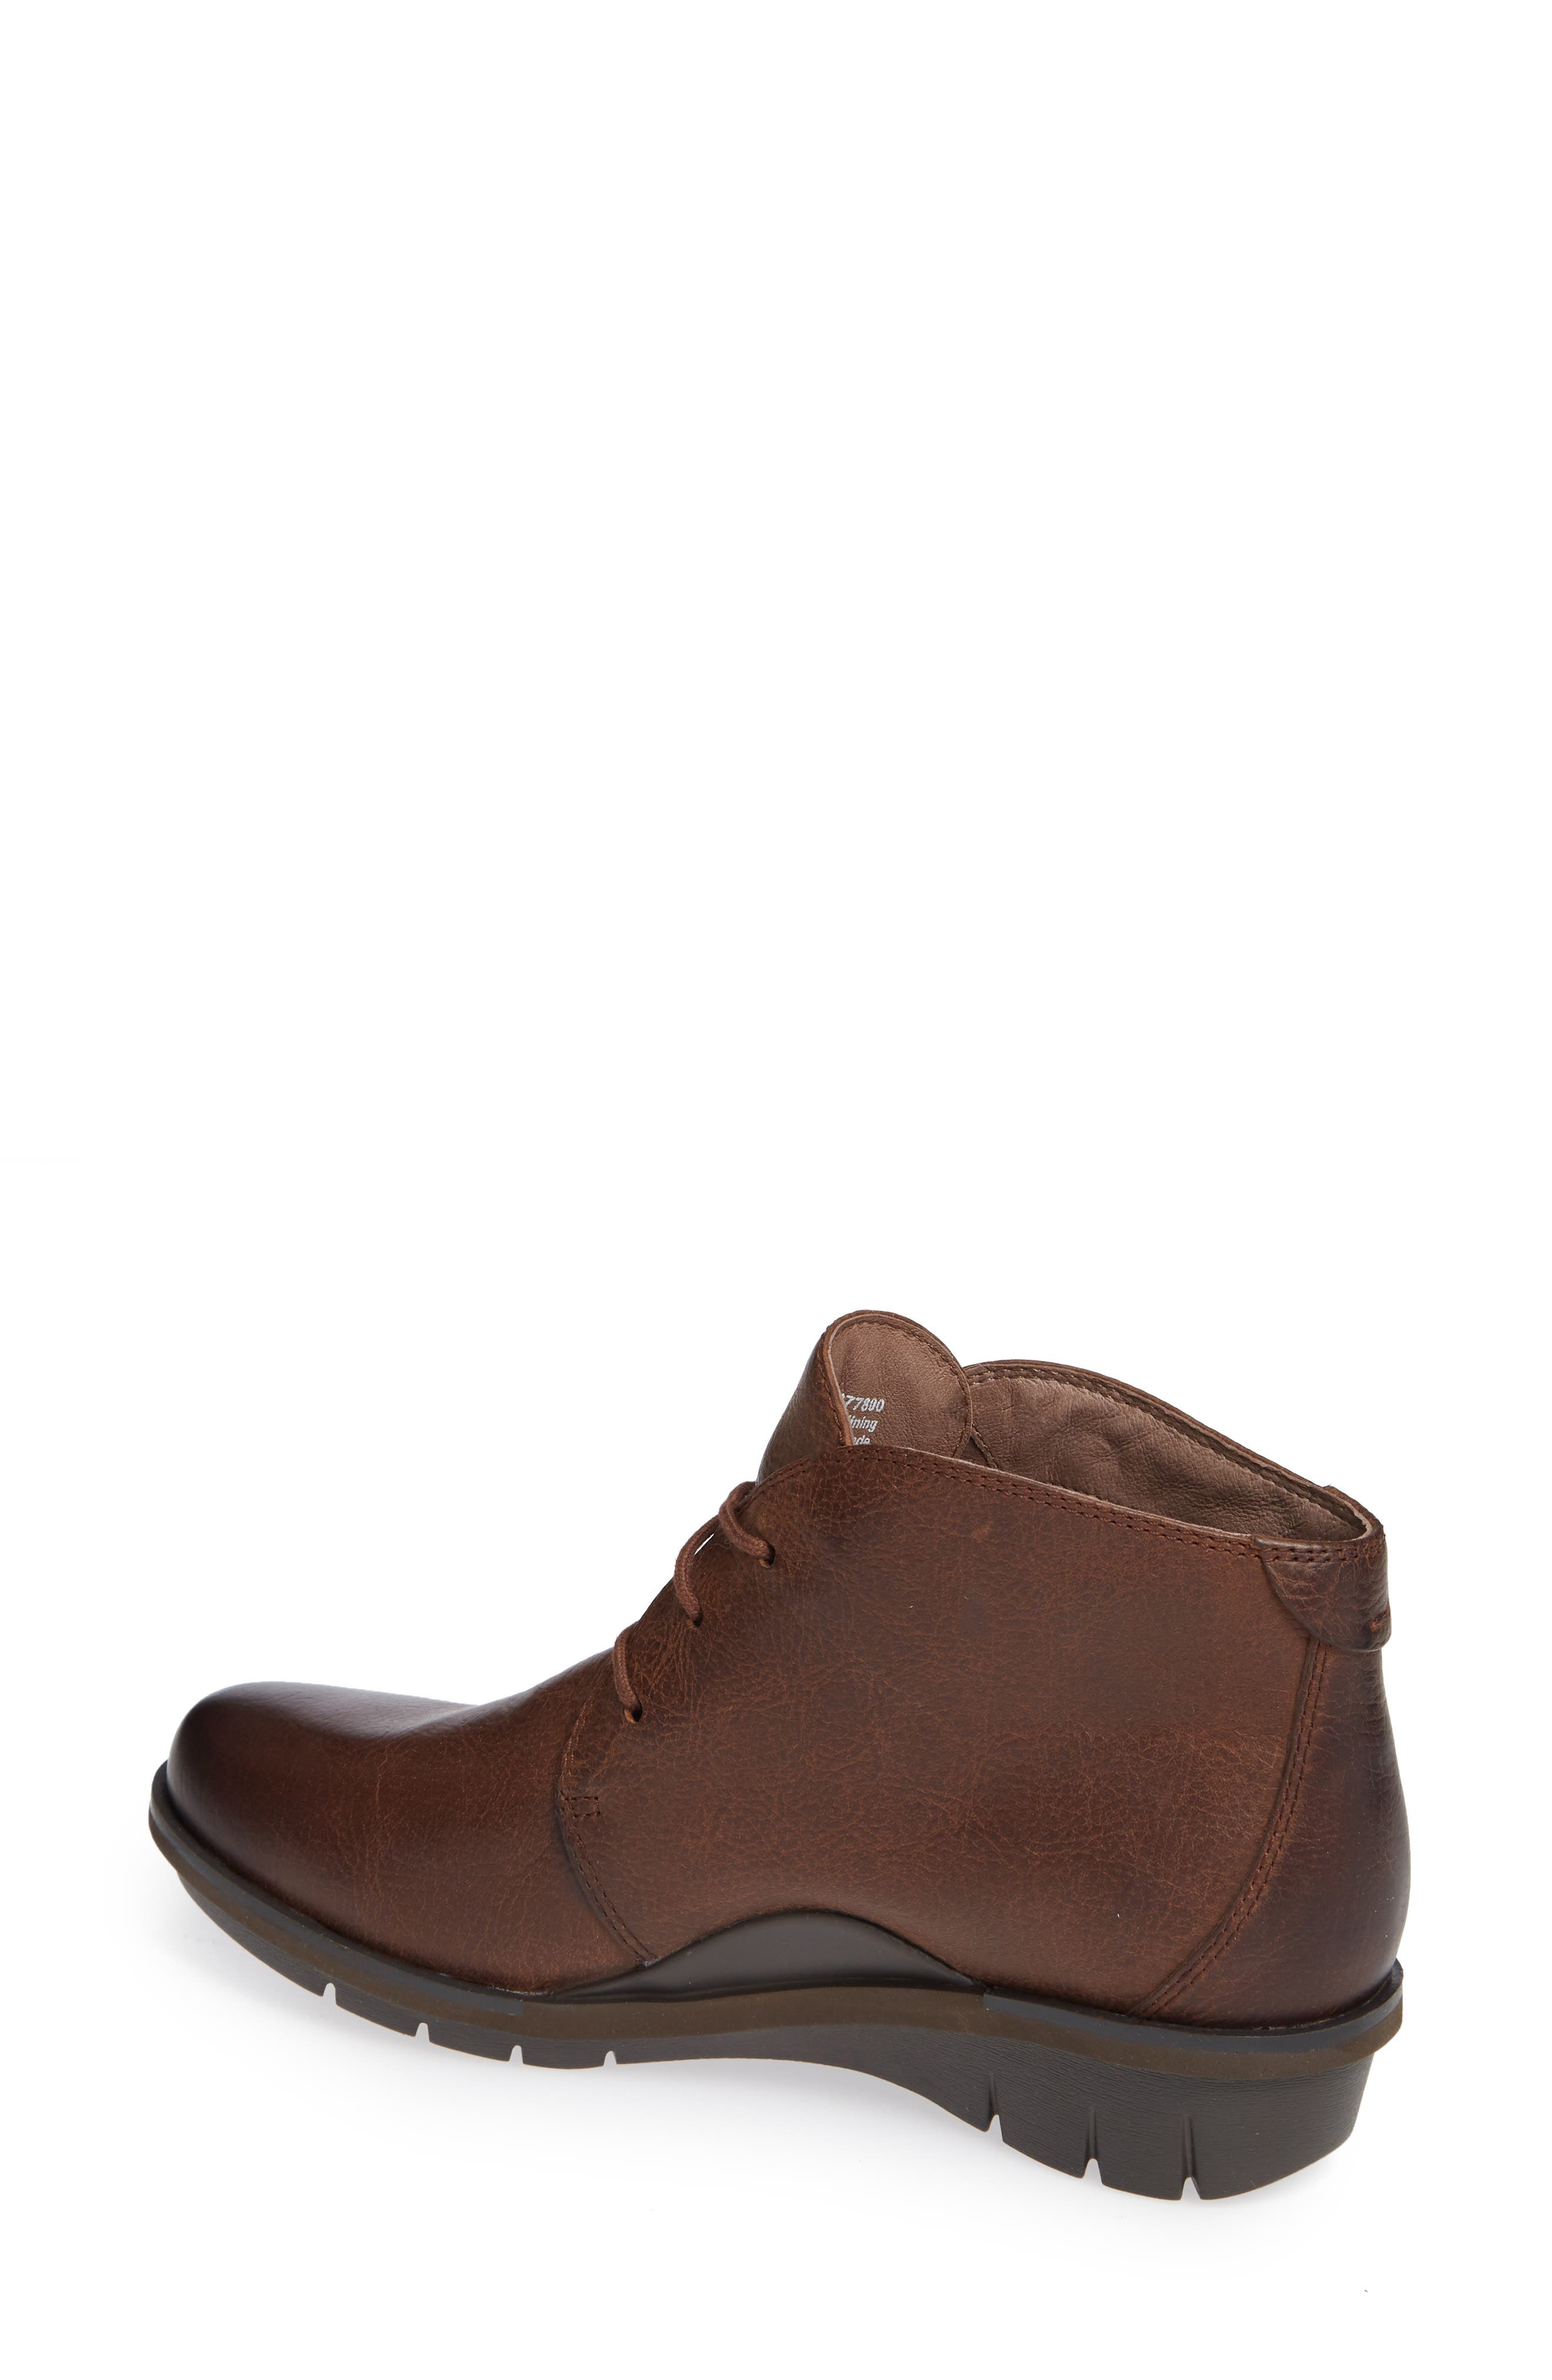 Joy Bootie,                             Alternate thumbnail 2, color,                             Brown Burnished Nubuck Leather